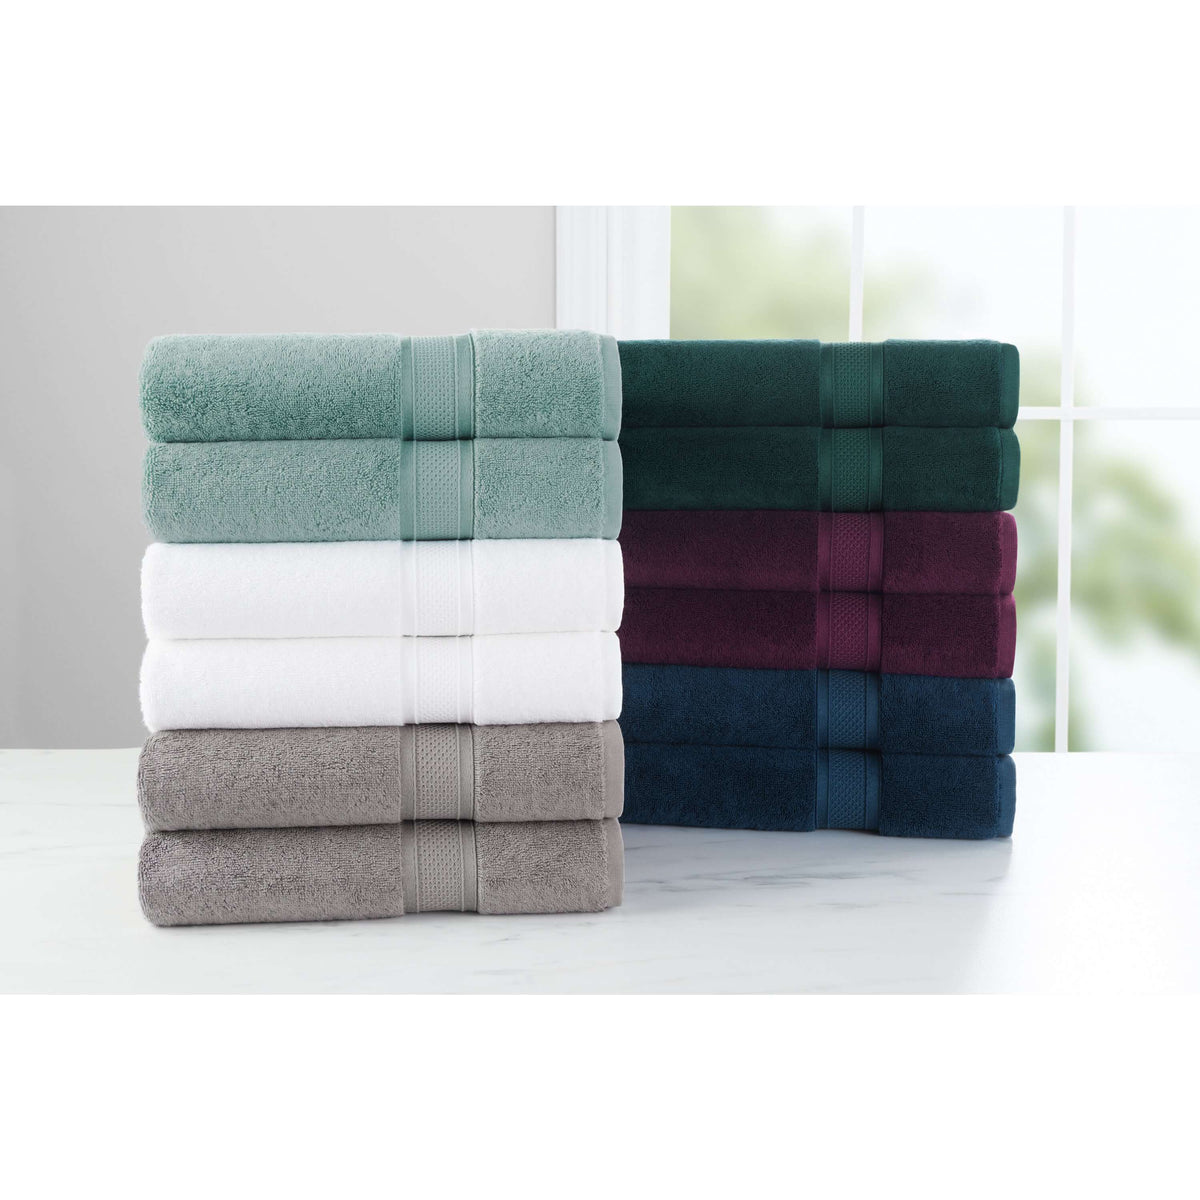 Luxury Rayon Bamboo/Cotton Towel Sets